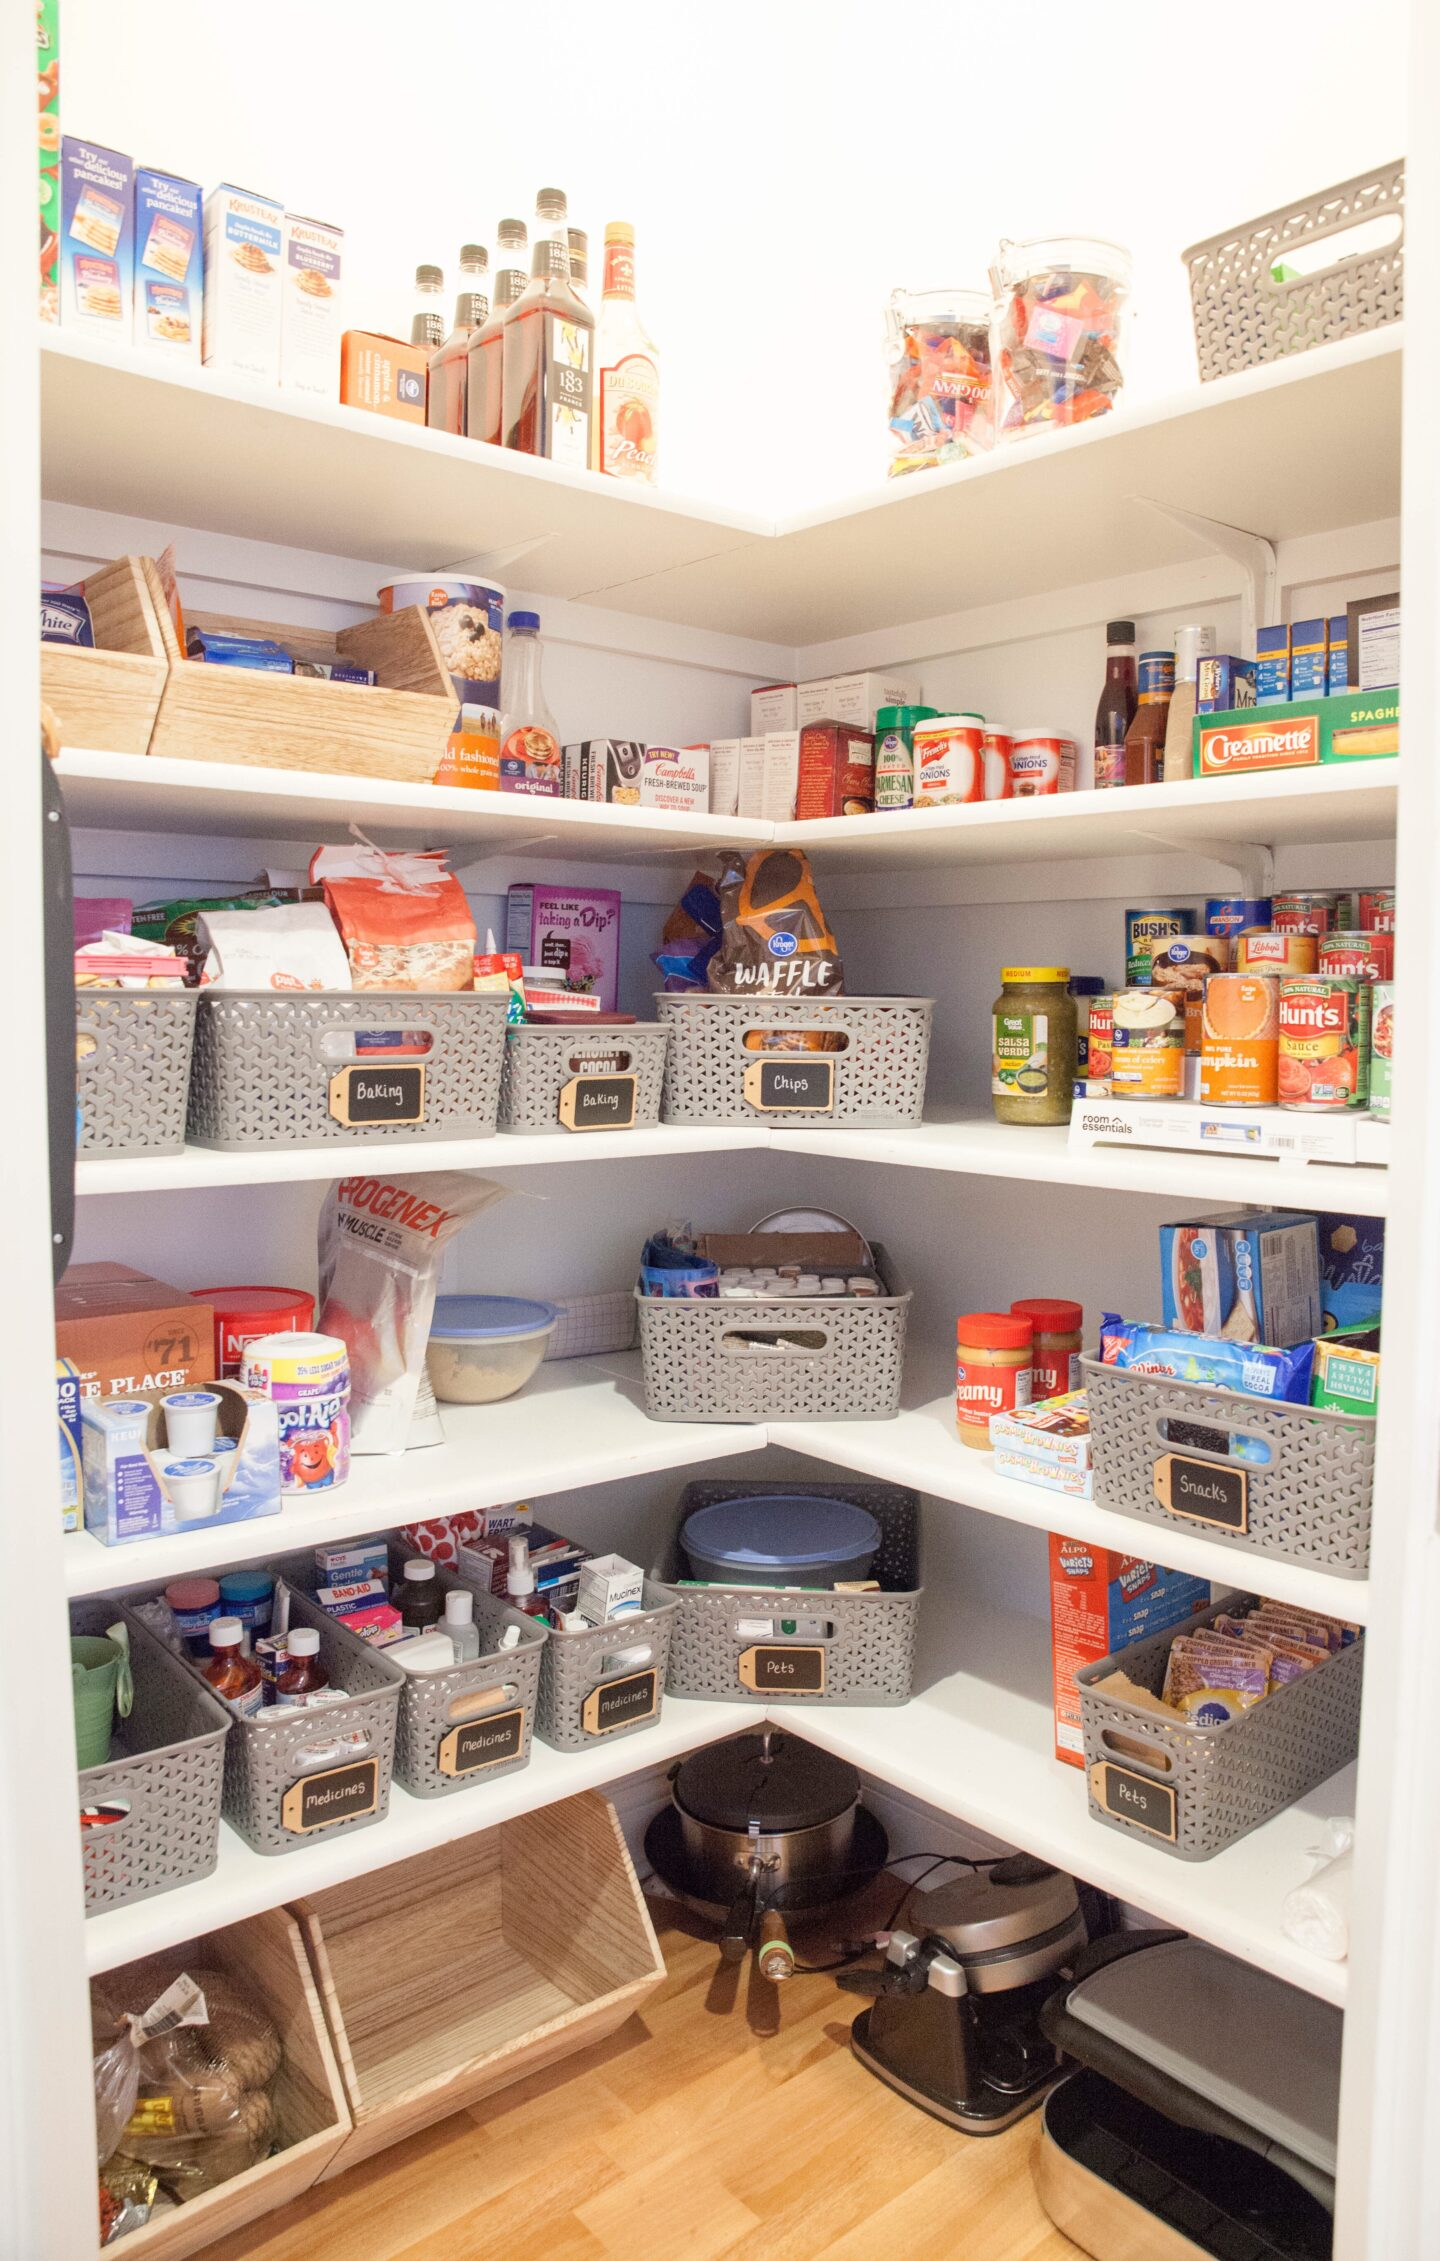 How to organize your Pantry with dollar tree items! Organize your kitchen and pantry on a budget. Frugal items for an organized pantry and home #Pantry #organizationtips #dollartree #dollartreeorganizationtips